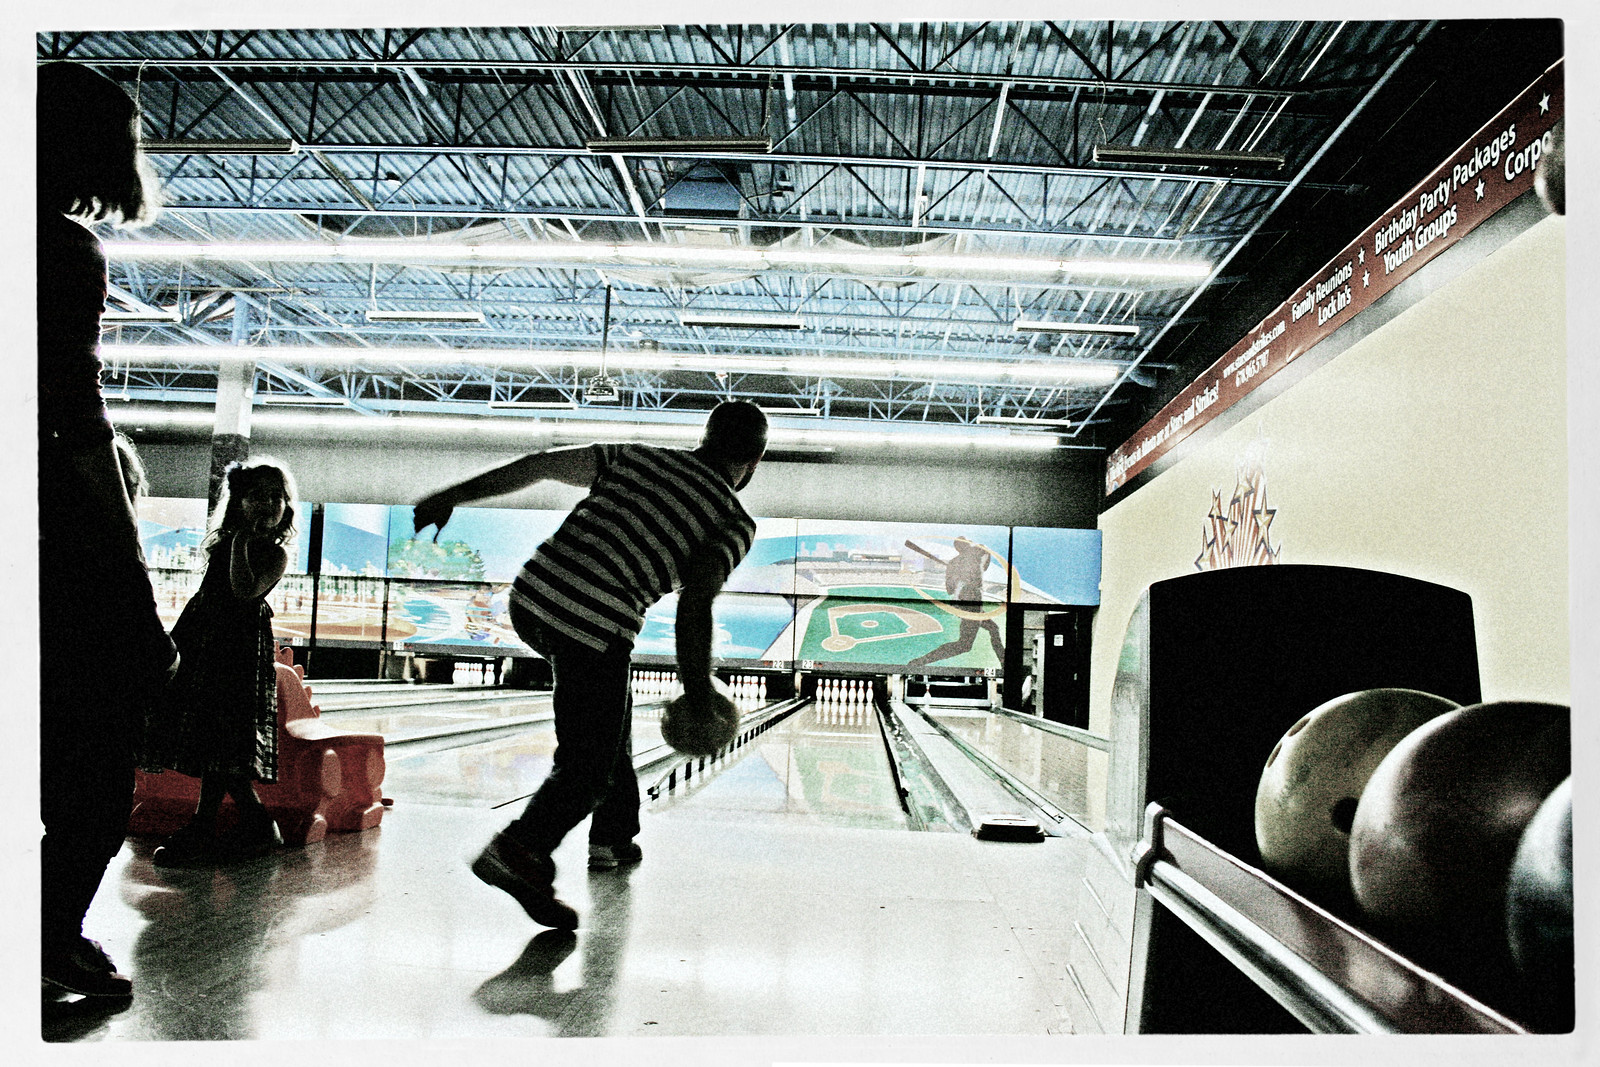 Bowler in Striped Shirt 2, Oct 2014